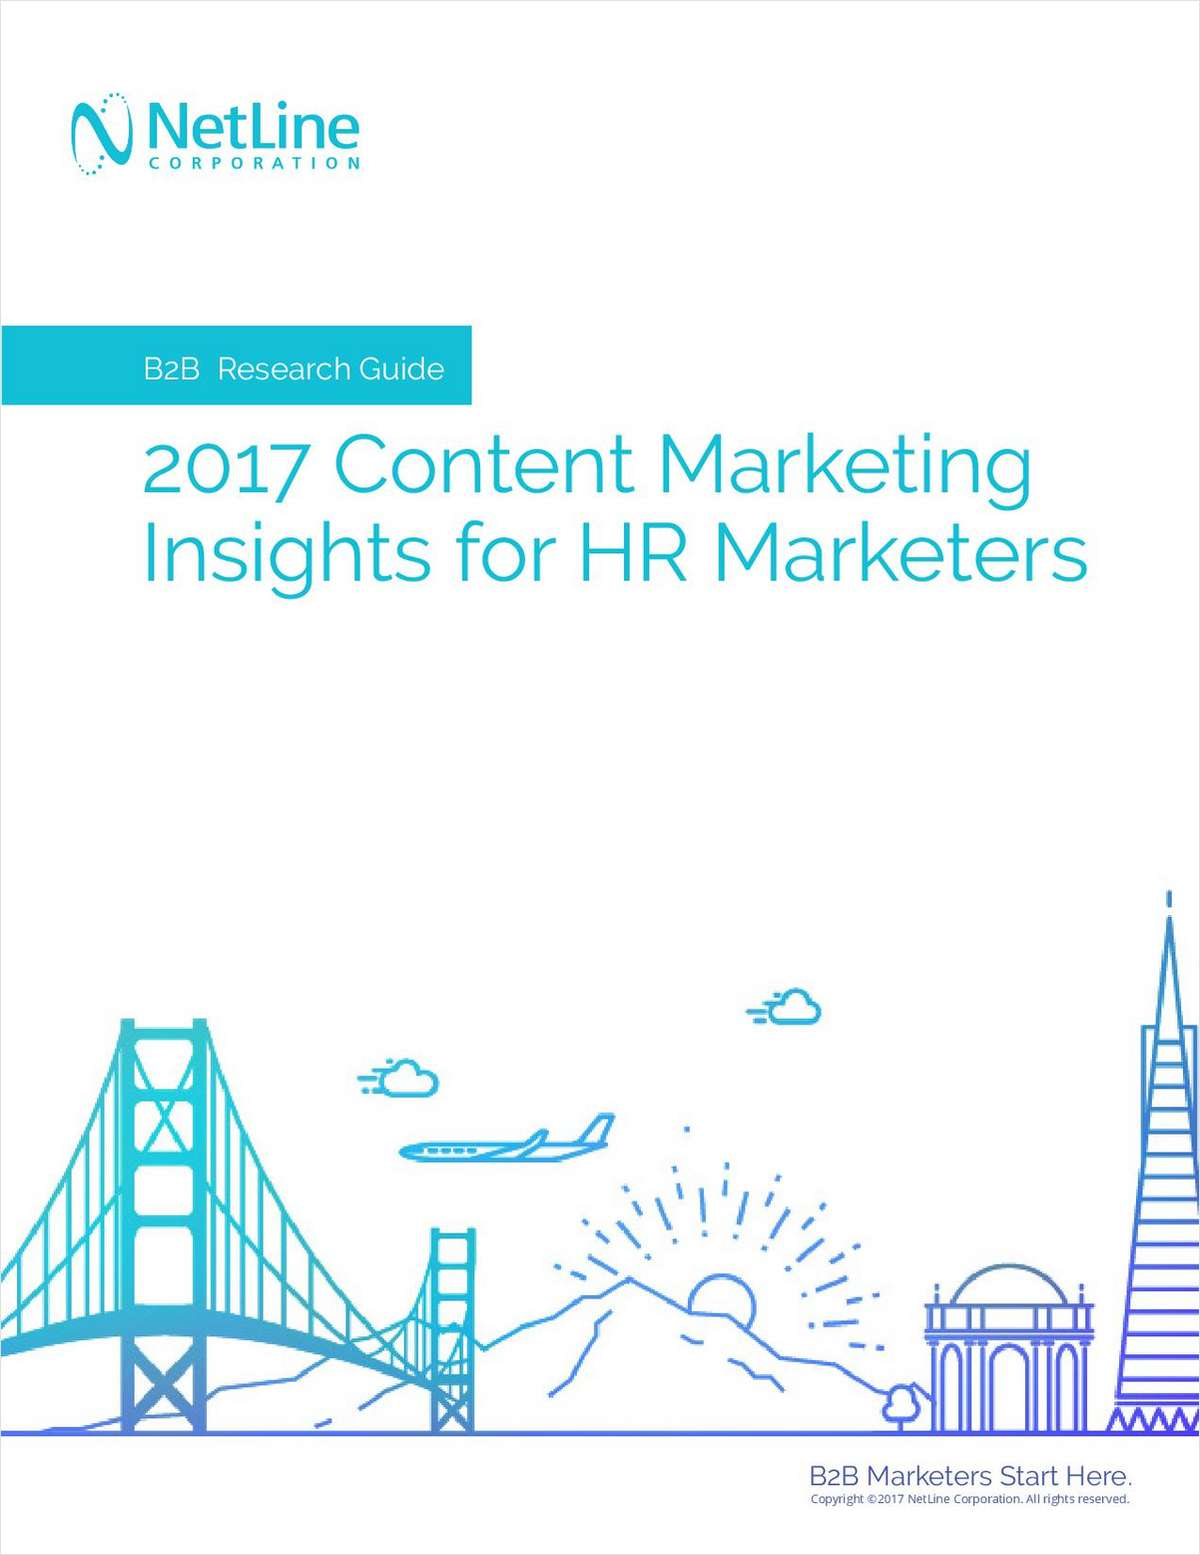 2017 Content Marketing Insights for HR Marketers